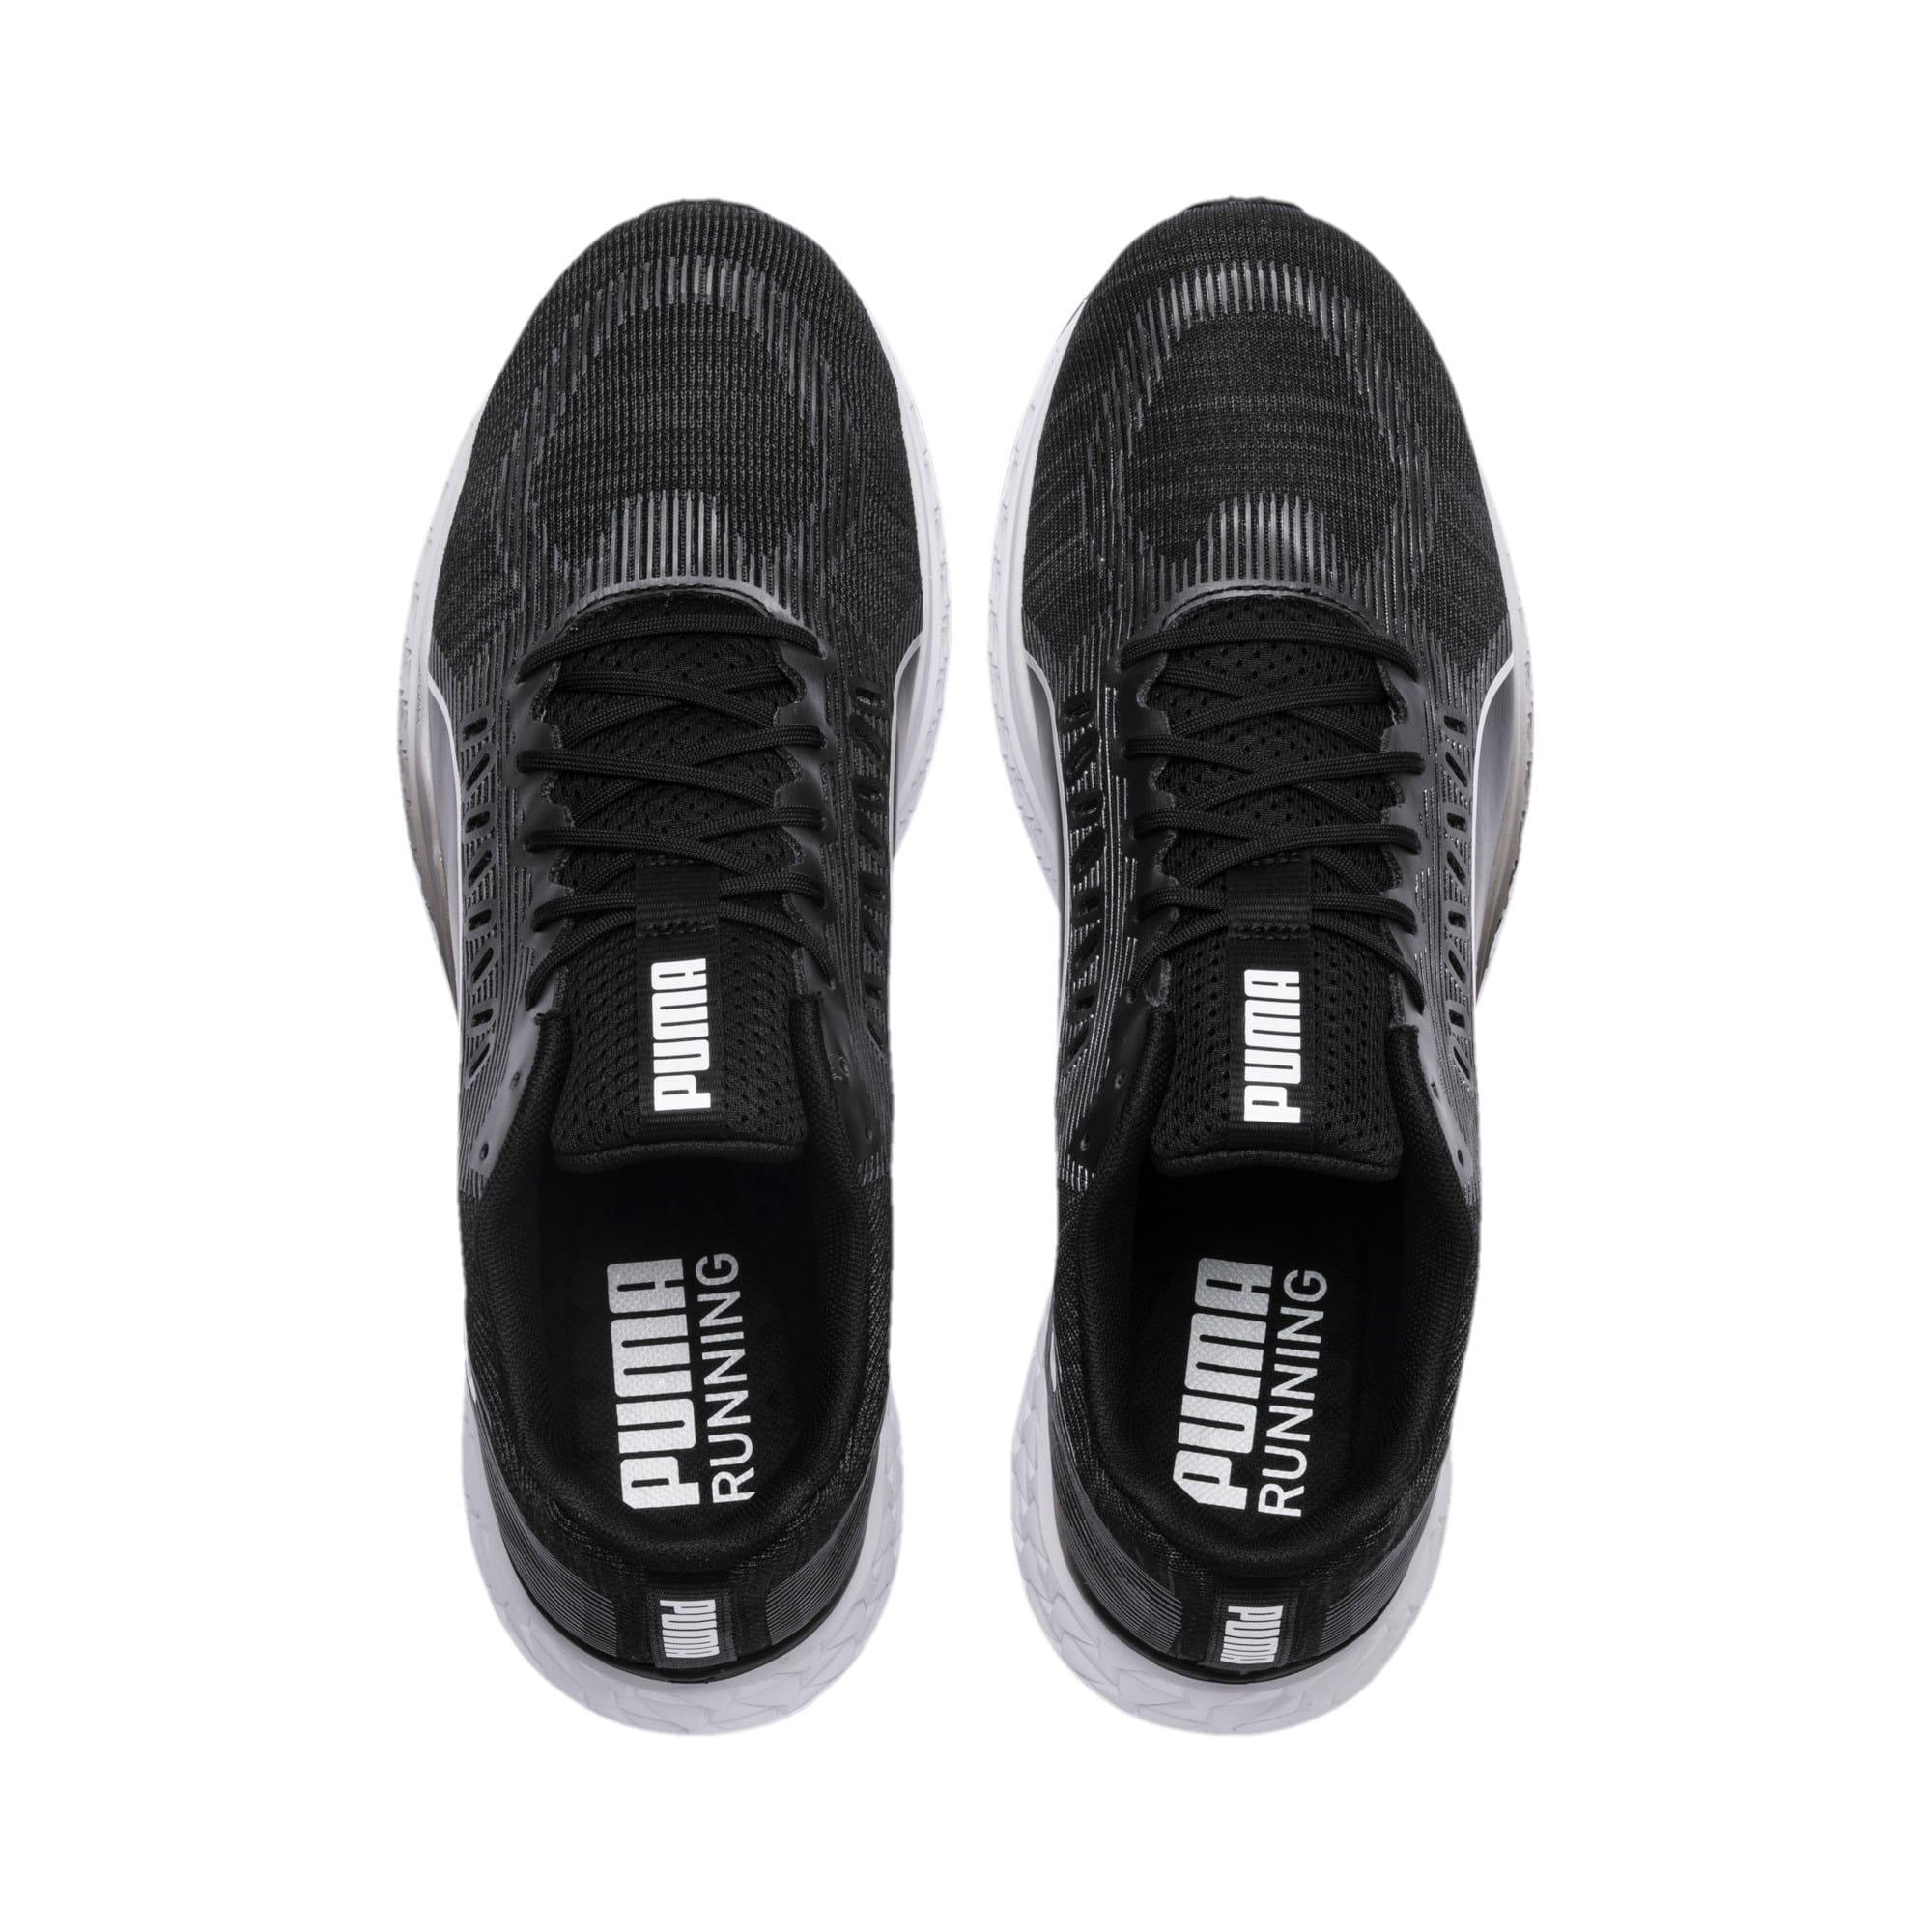 Imagen en miniatura 6 de Zapatillas de running SPEED SUTAMINA, Puma Black-Puma White, mediana